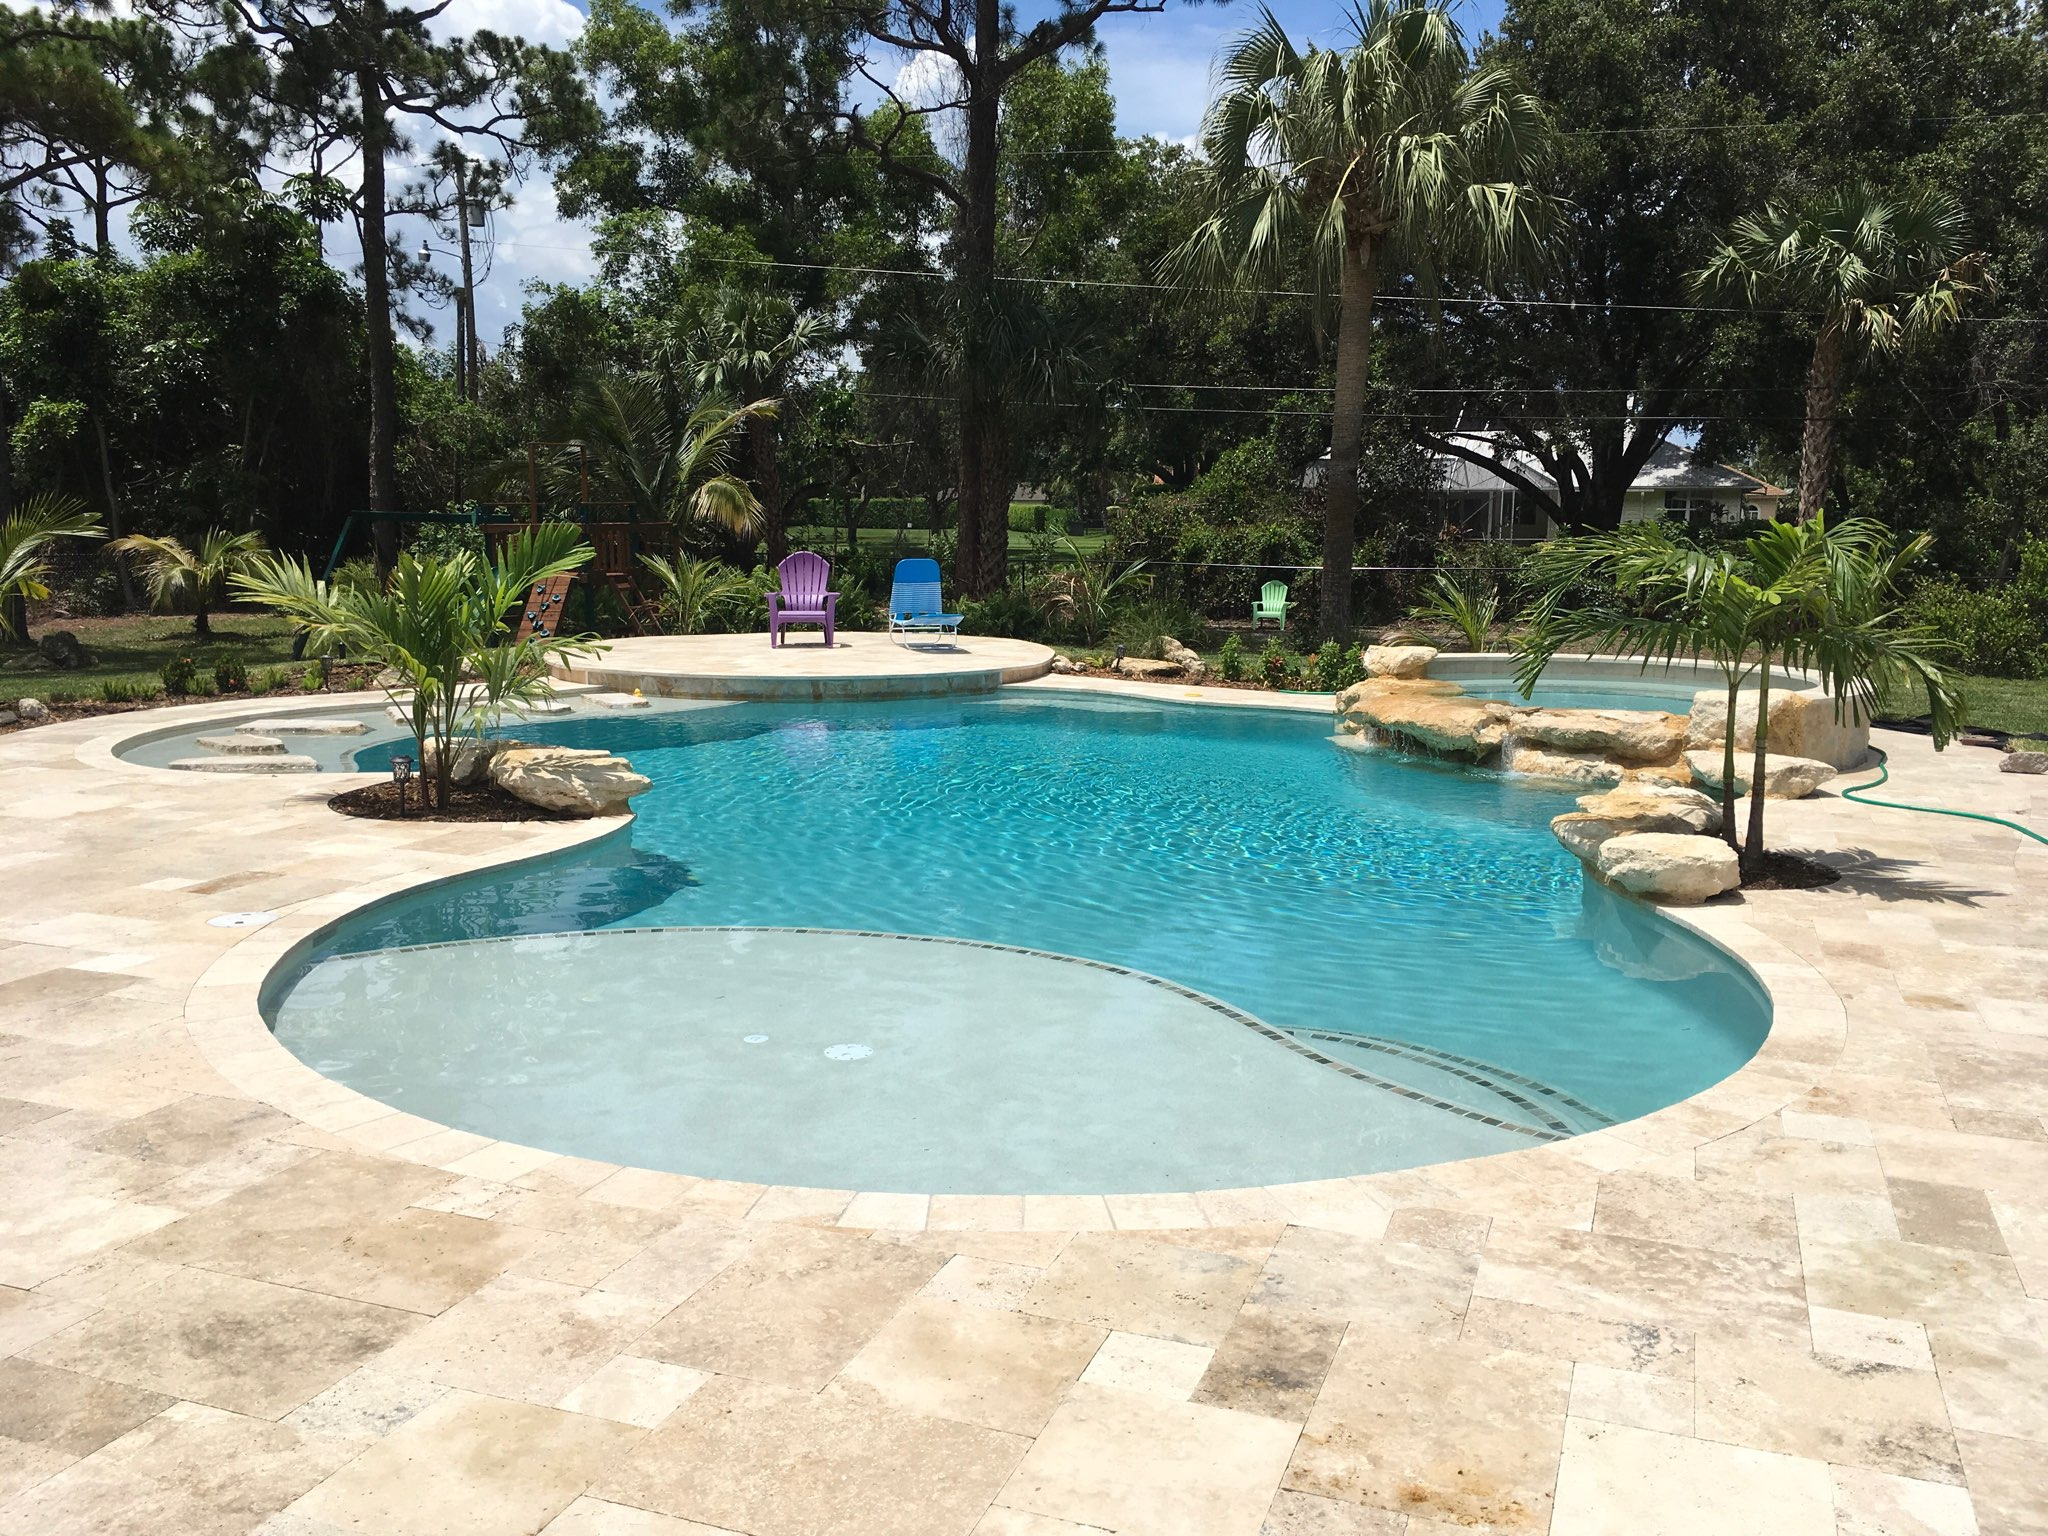 rhr pools of jupiter fl organically shaped pool with rock waterfall edge on the spa and stepping stones